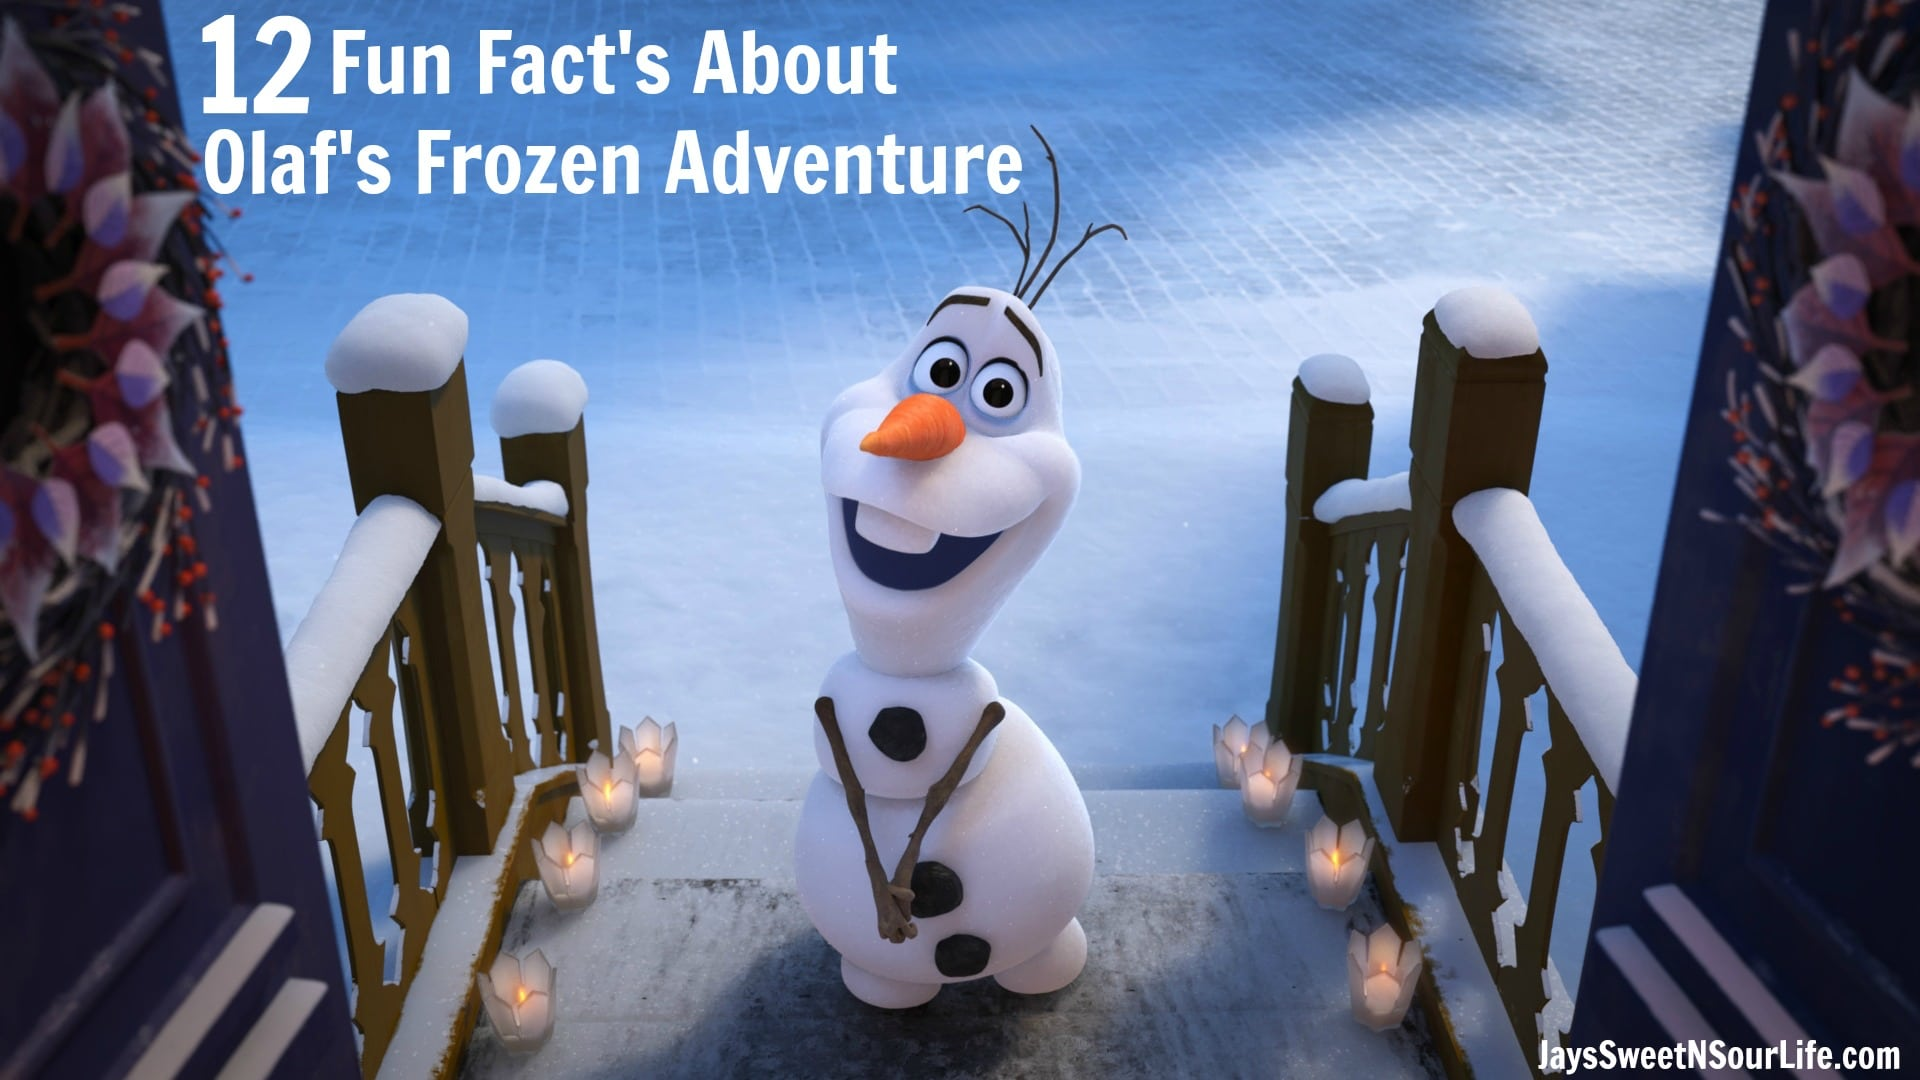 12 Fun Fact's About Olaf's Frozen Adventure